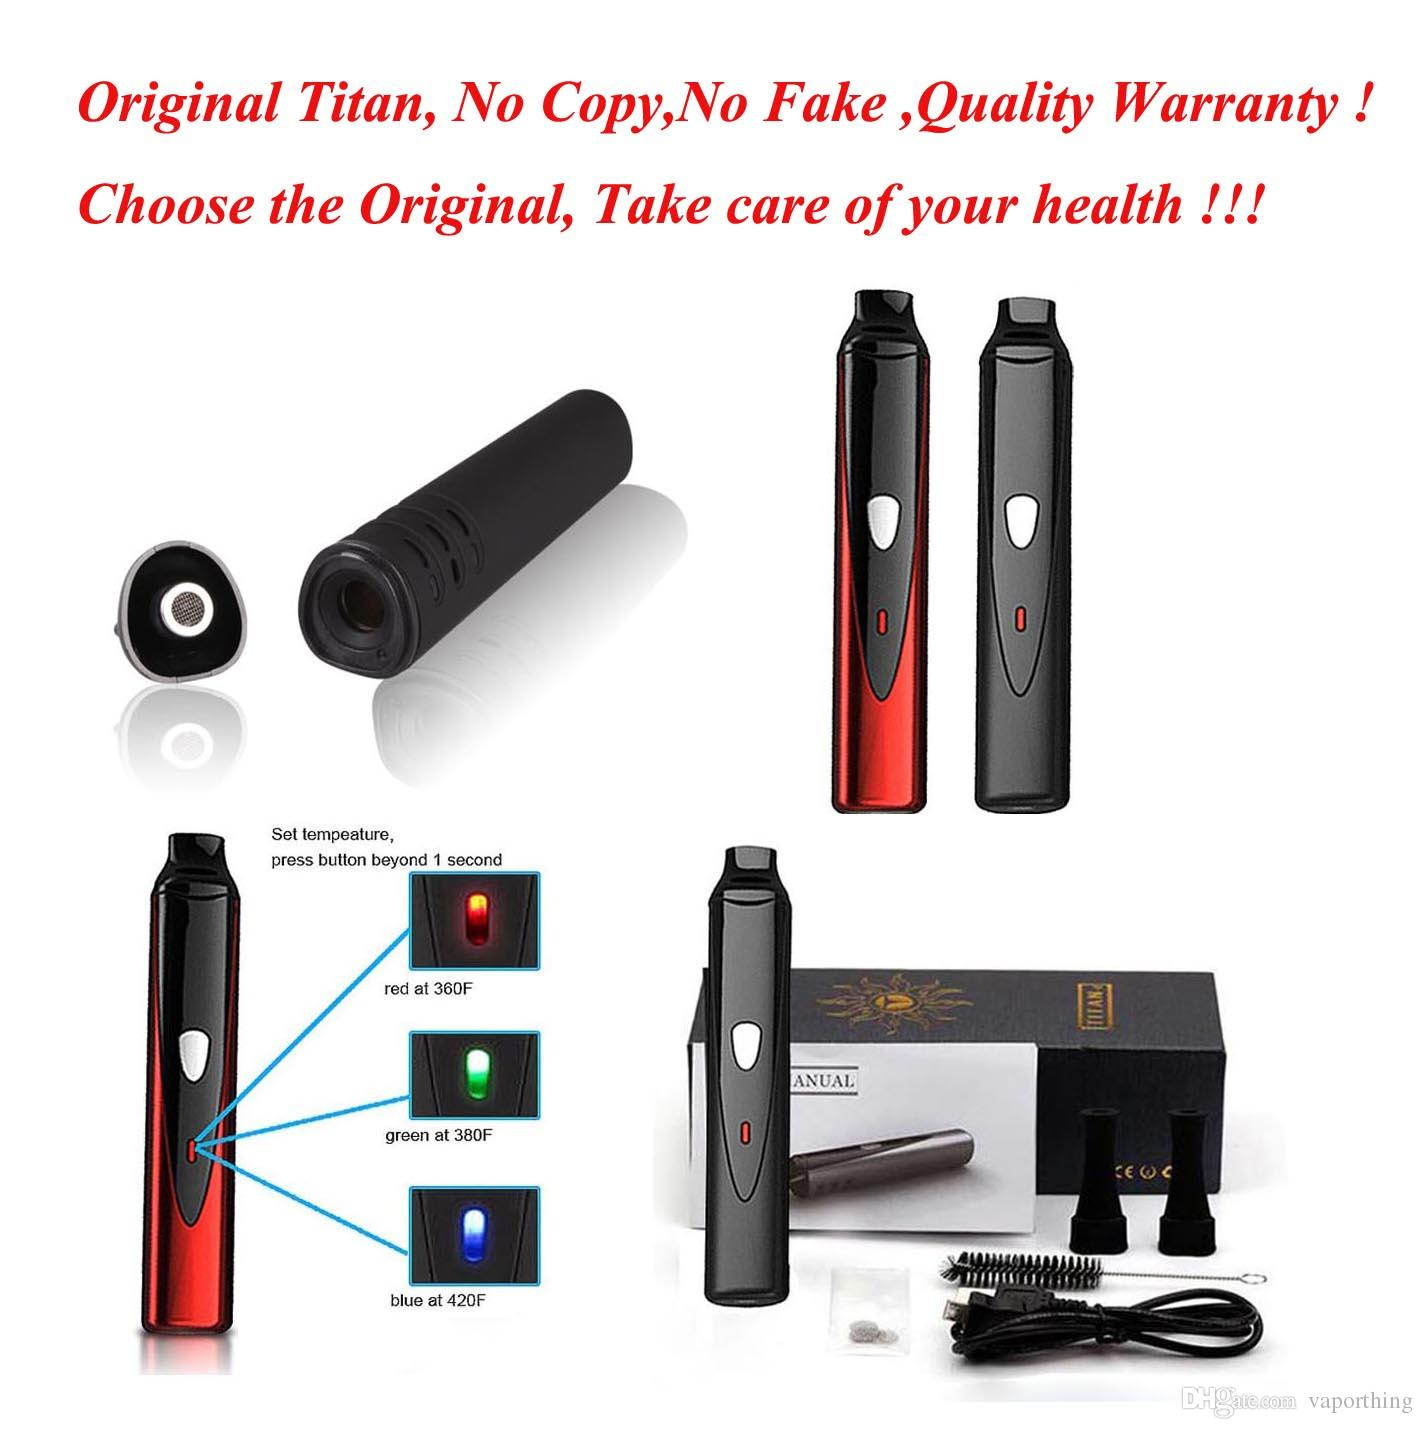 Cheap portable herbal vaporizers - See Larger Image